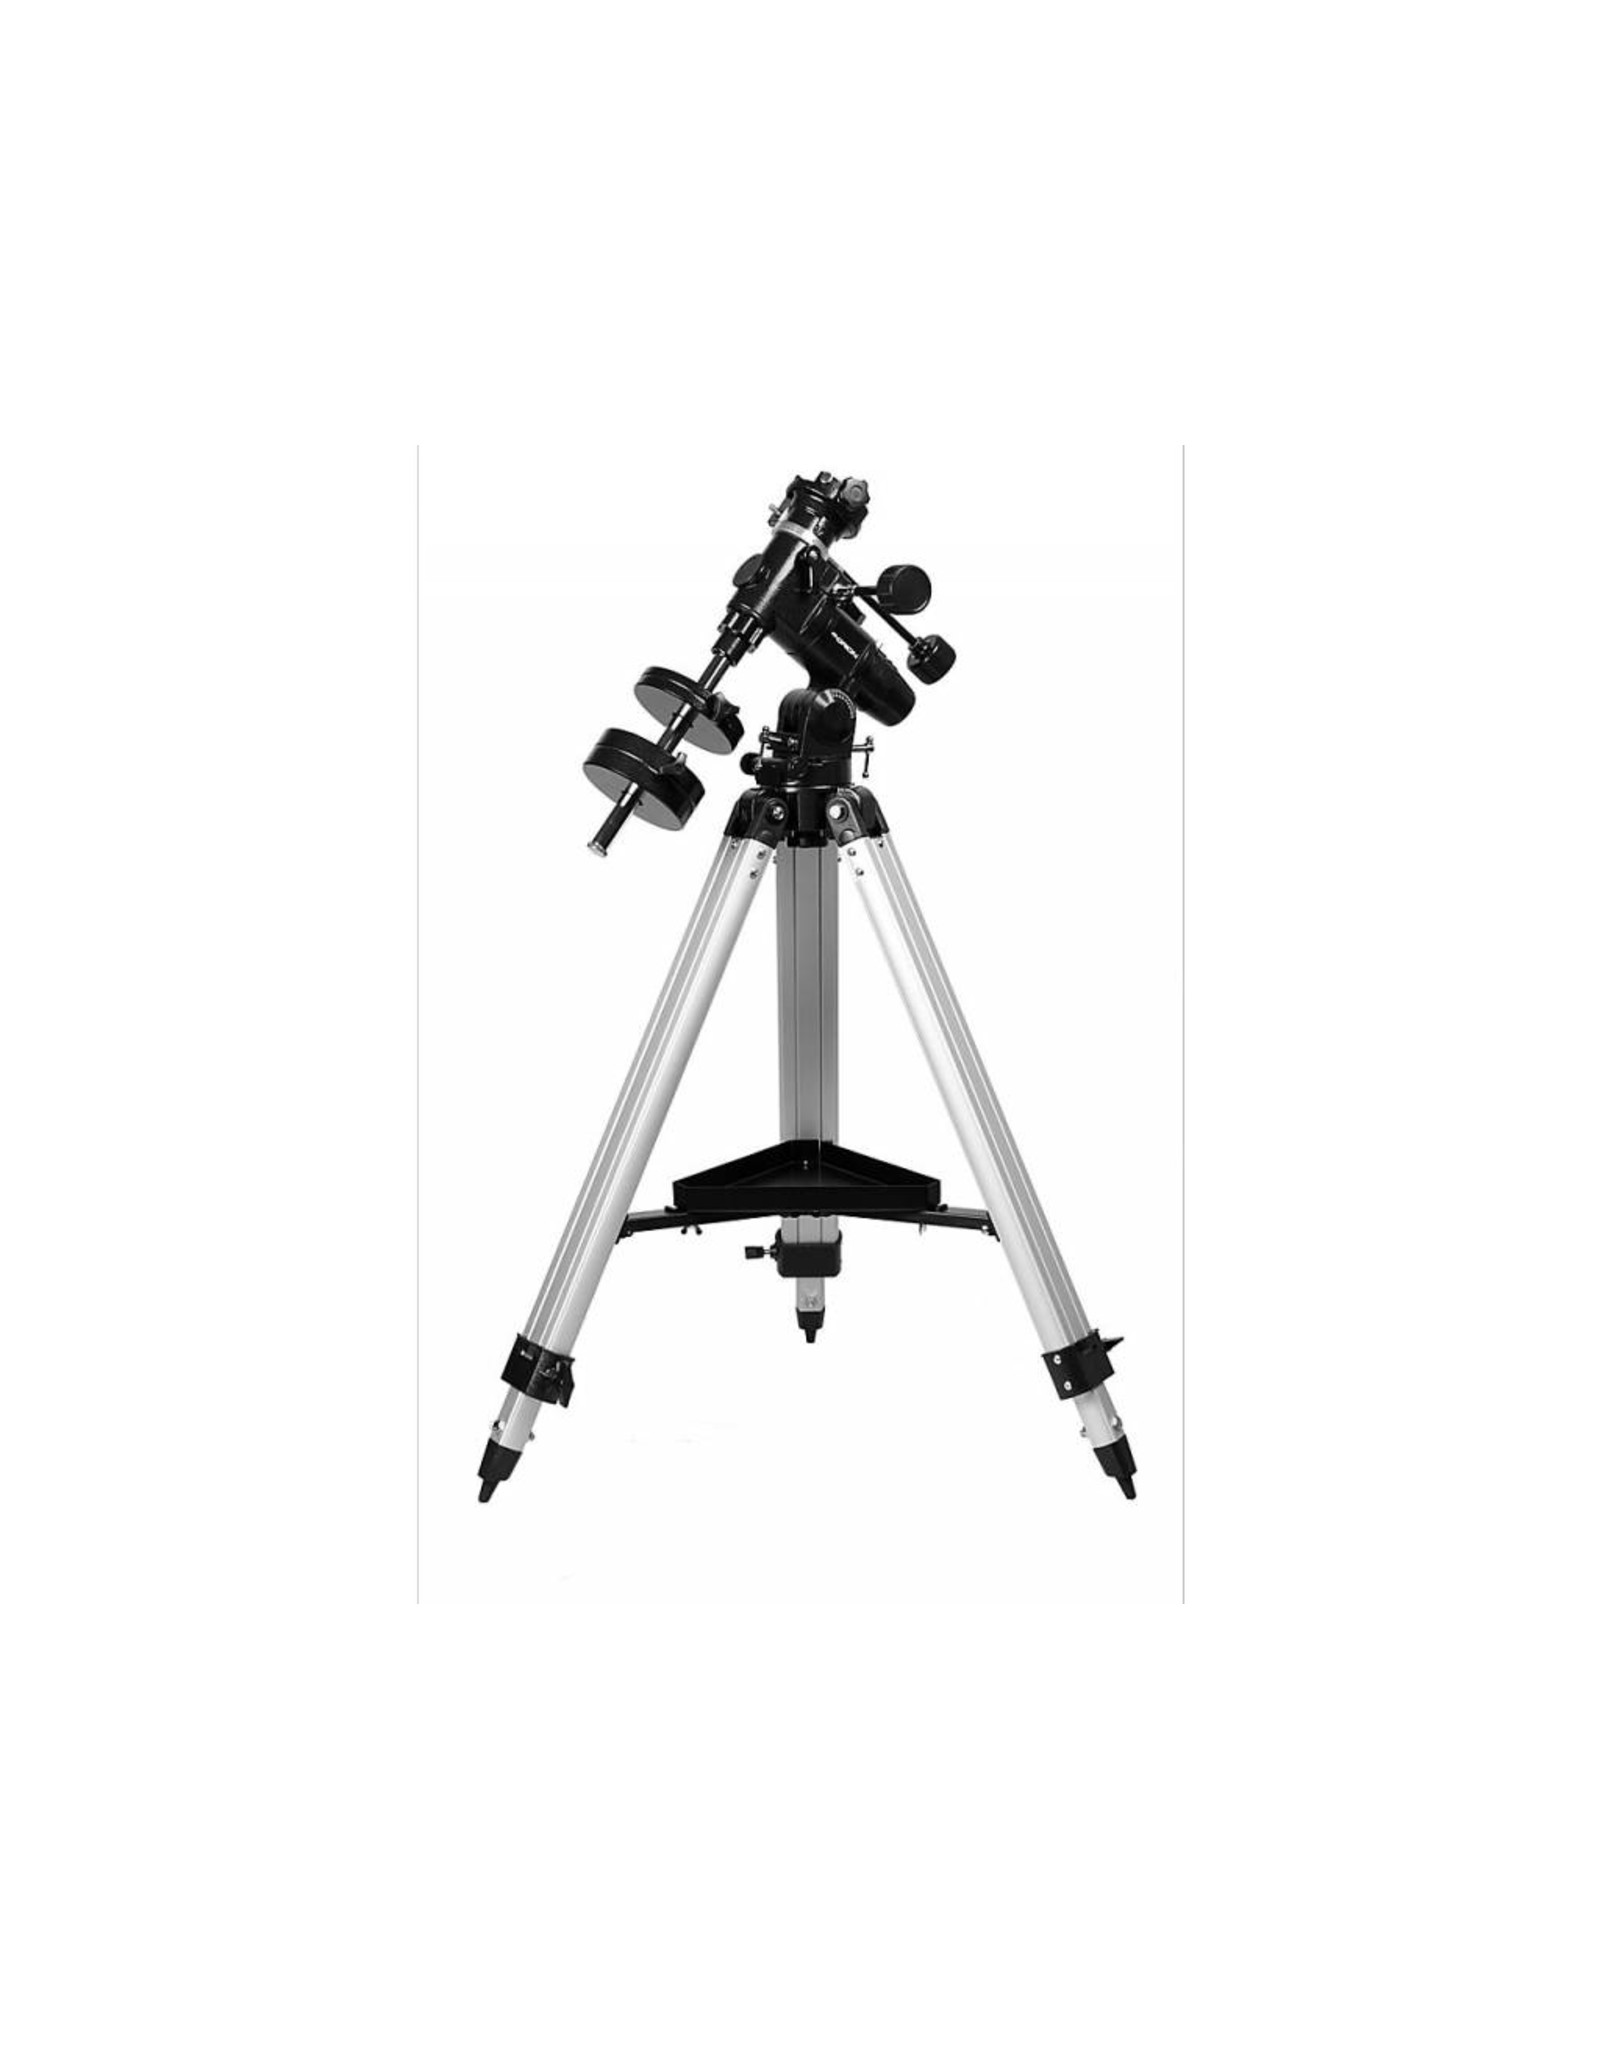 Orion Orion AstroView Equatorial Telescope Mount